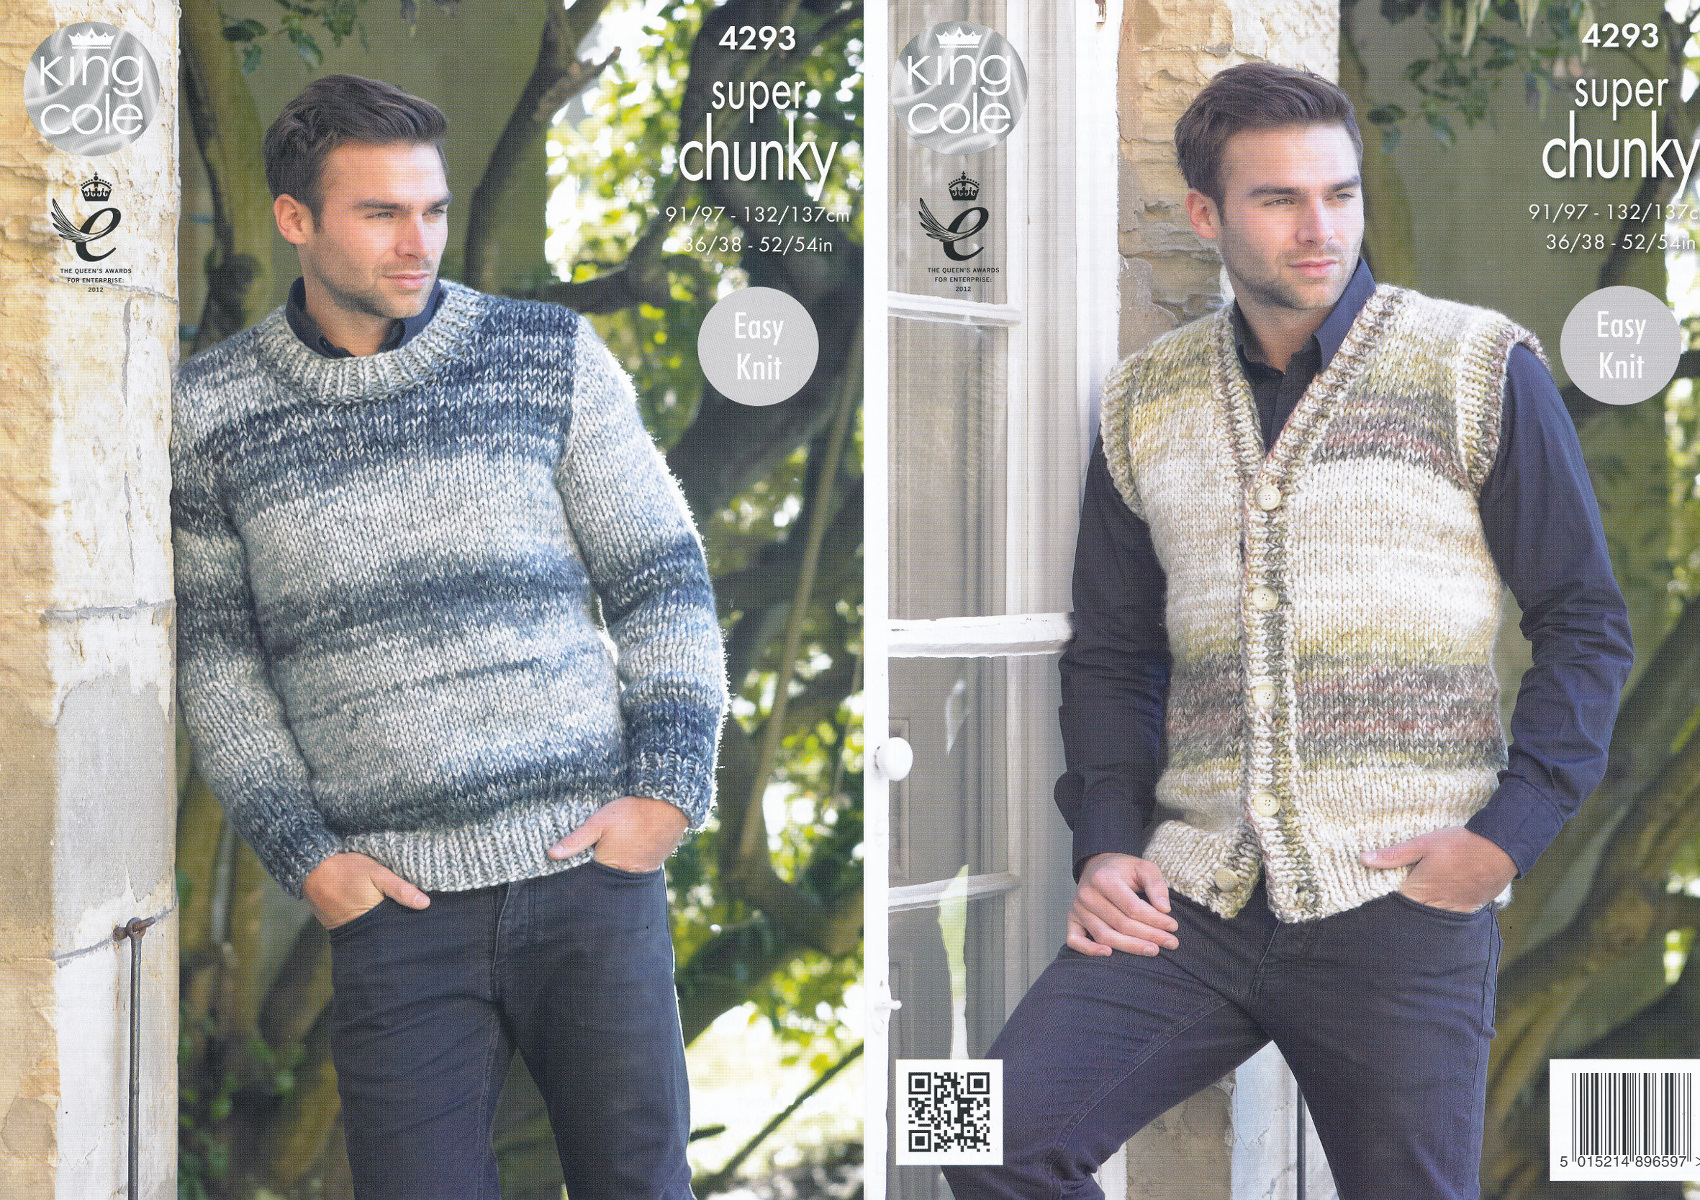 King Cole Mens Super Chunky Knitting Pattern Easy Knit Jumper & Waistcoat...